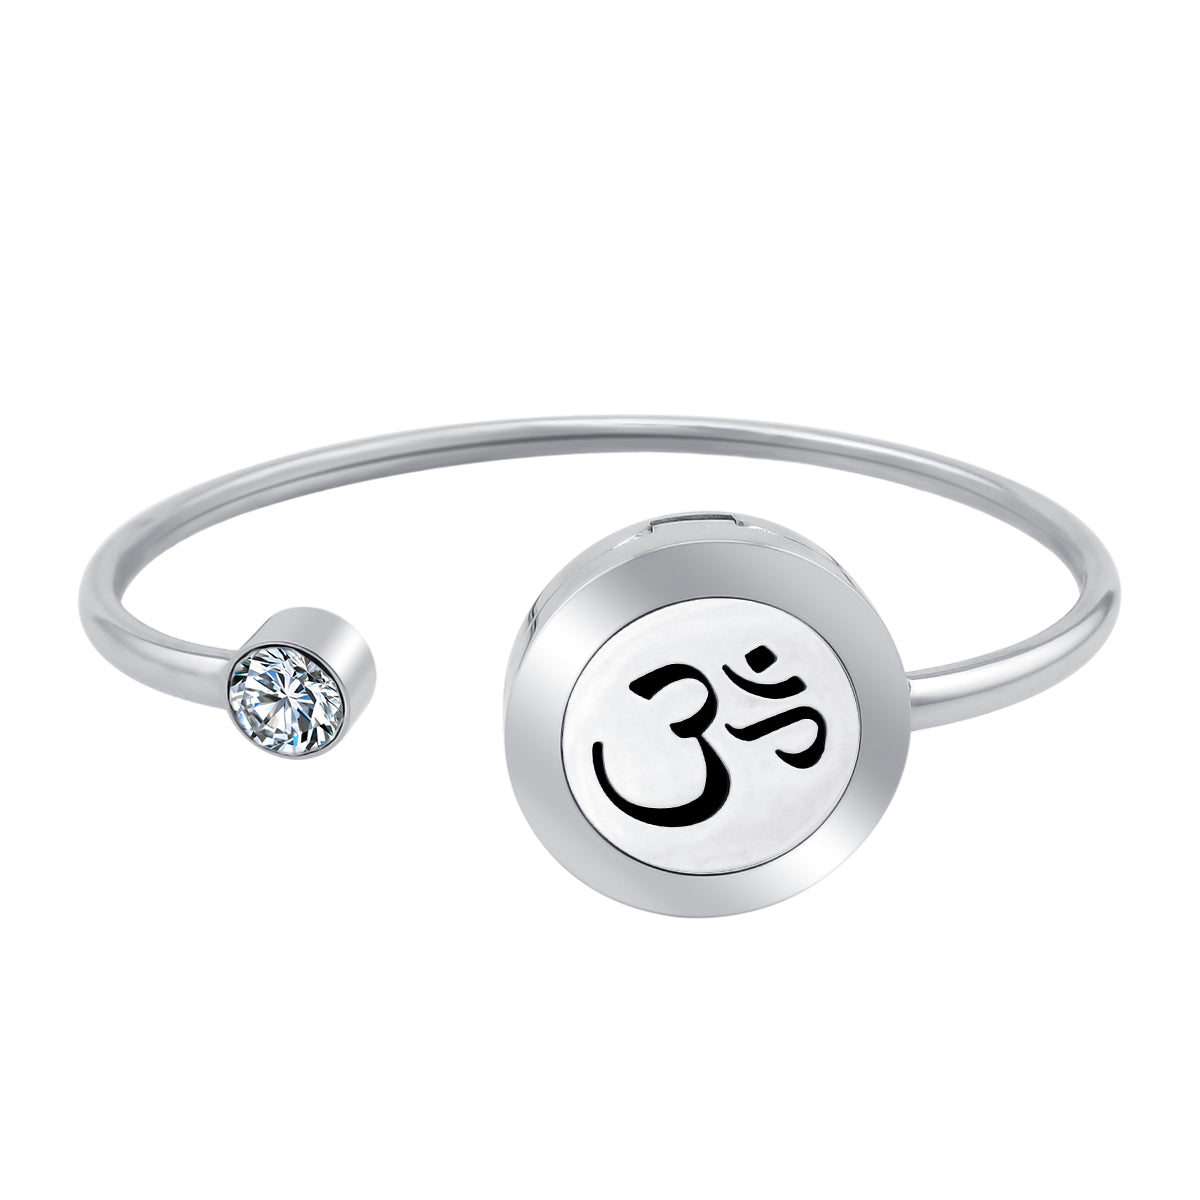 Essential Oil Diffuser Bracelet - OM Bangle with Crystal